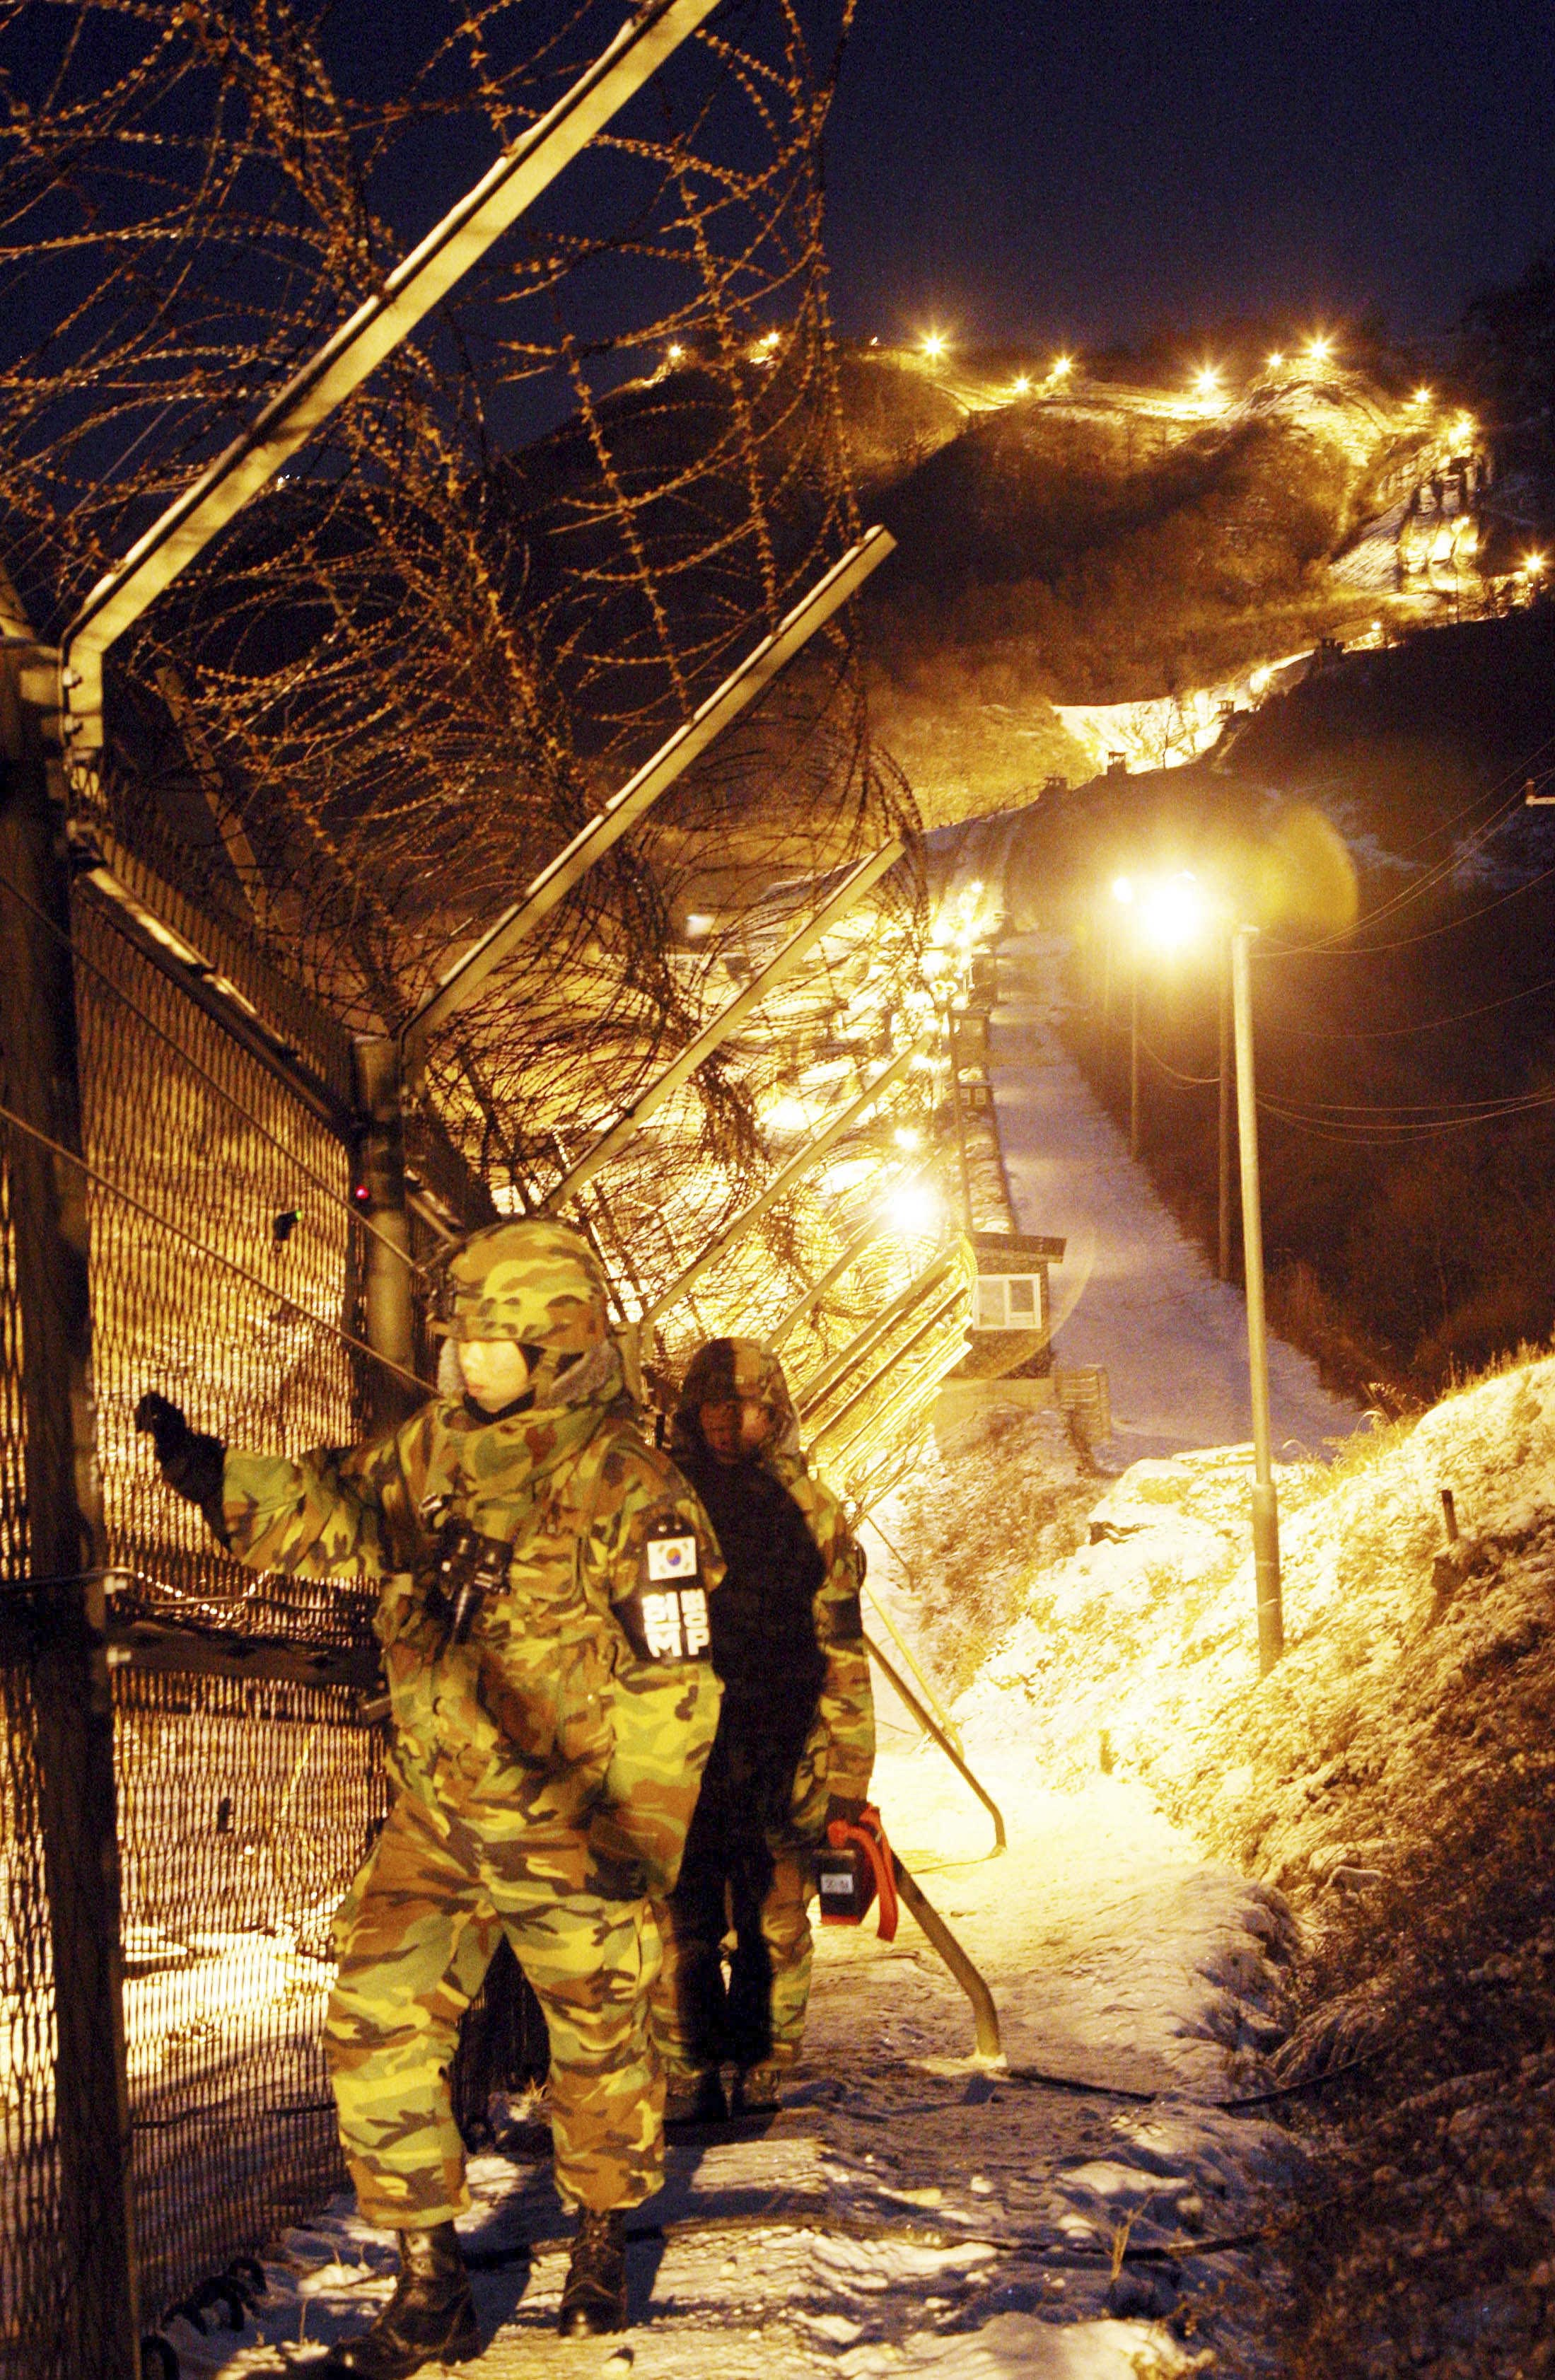 South Korean Army soldiers patrol along the barbed-wire fence in the early morning at the demilitarized zone(DMZ) in Hwacheon, north of Seoul, South K...